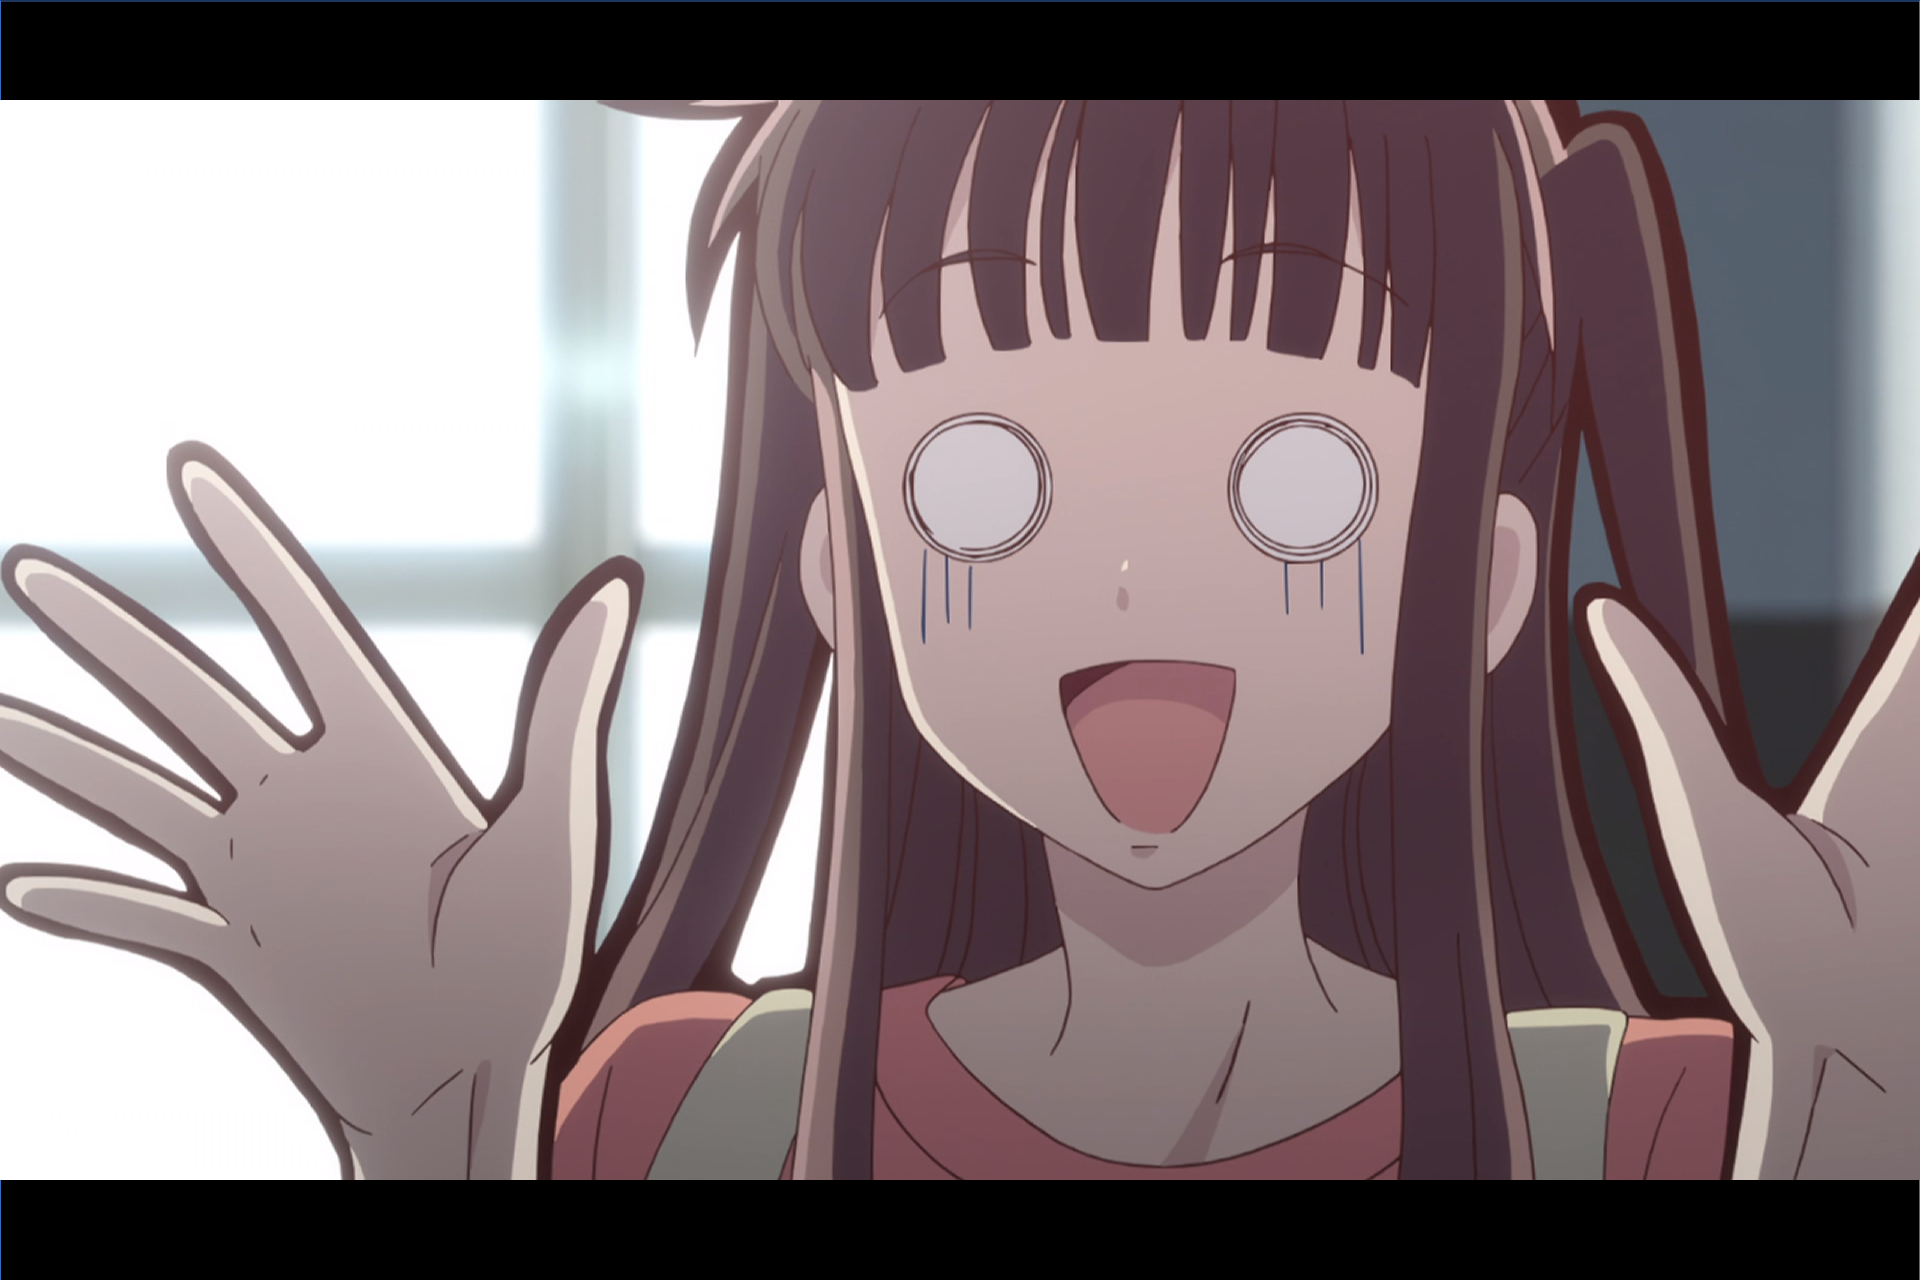 Another one of Tohru's suprised faces!!! Fruits basket